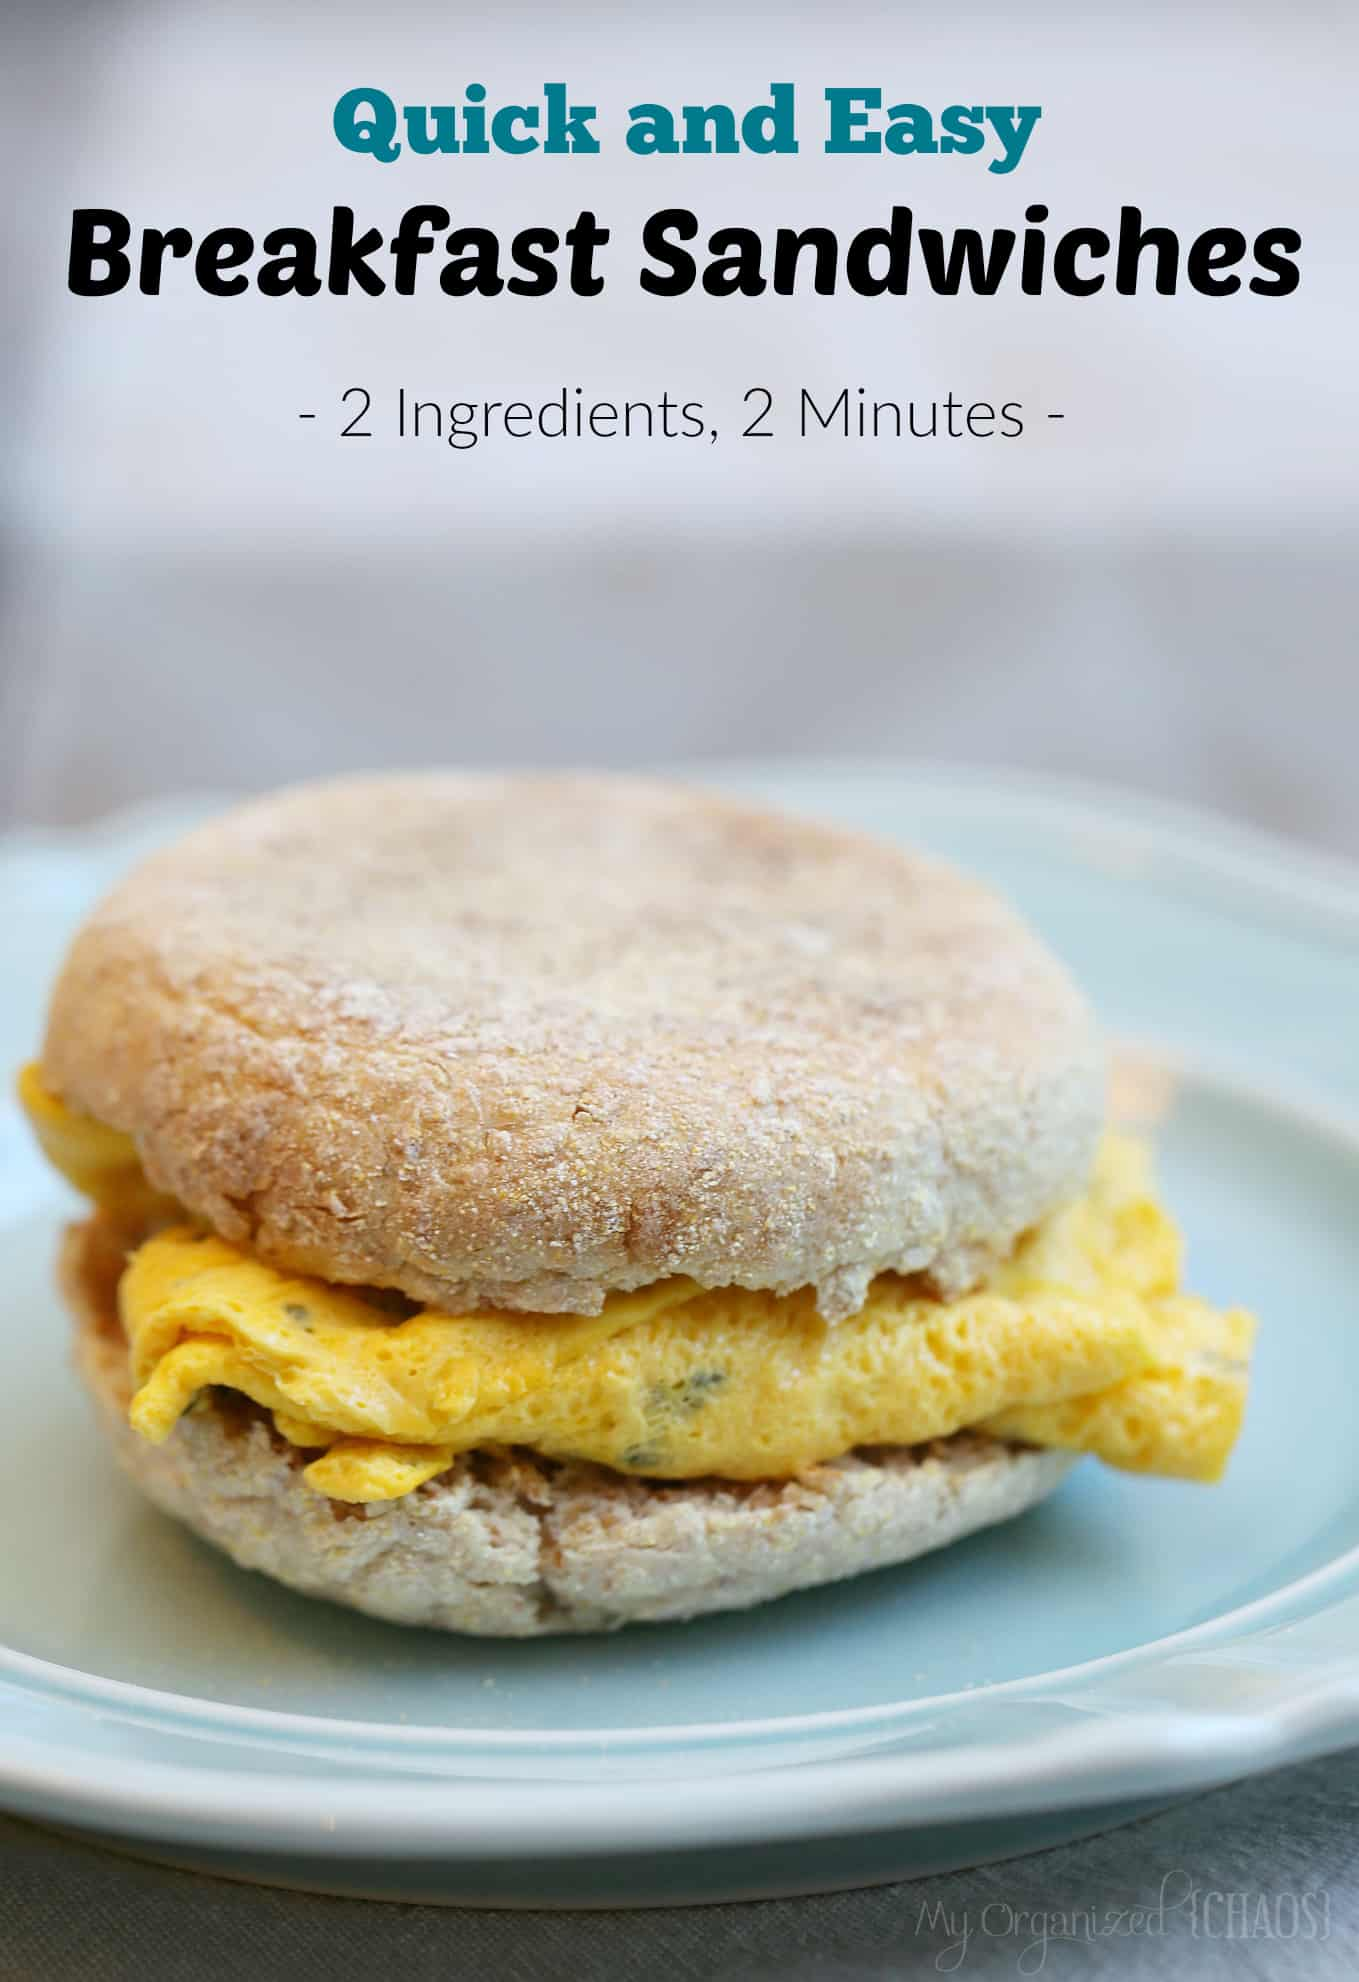 Quick and Easy Breakfast Sandwiches